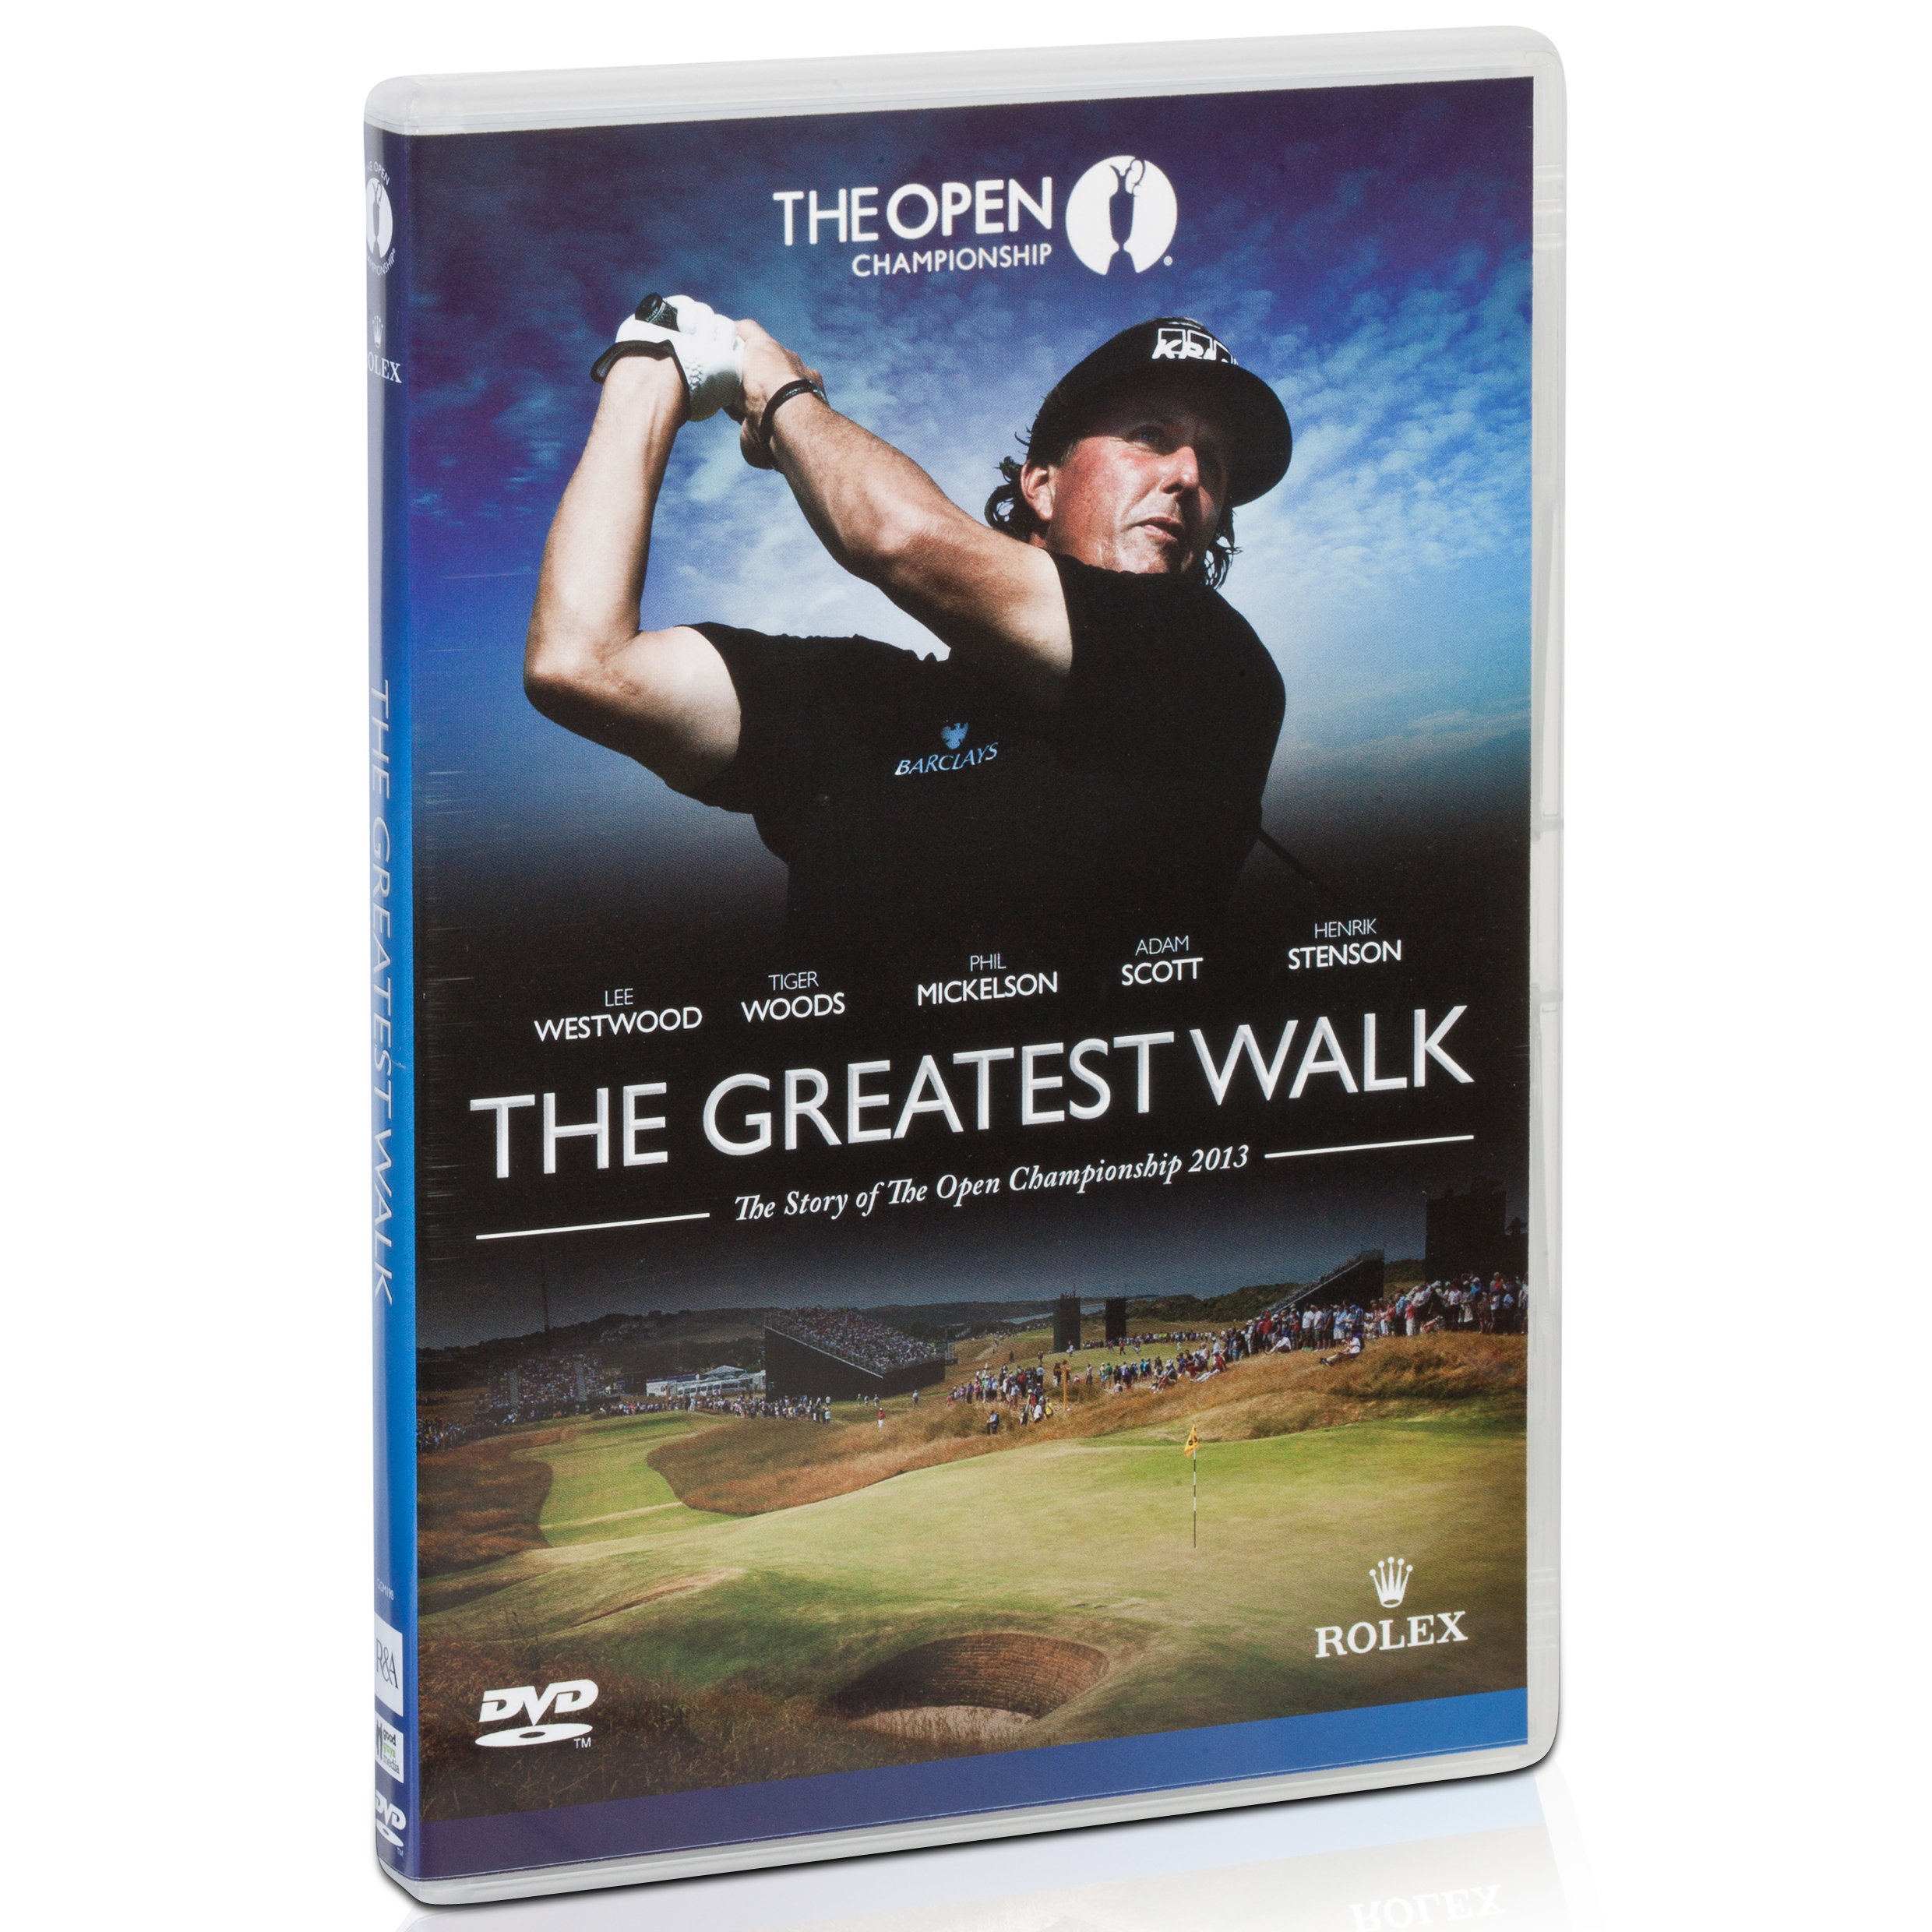 The Open Championship The Greatest Walk: The Story of the Open Championship 2013